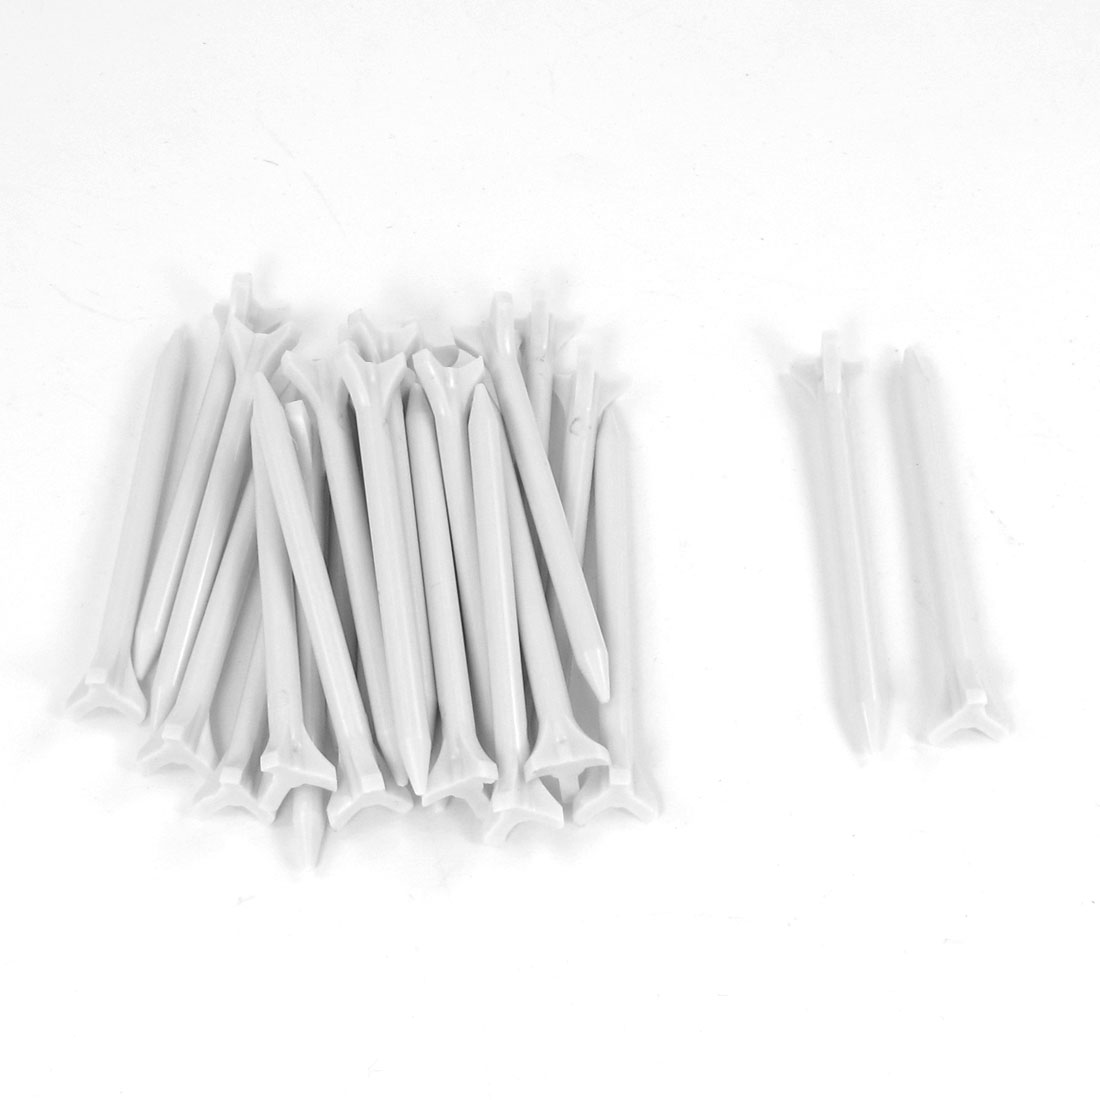 25 Pcs Plastic Triangle Head Zero Friction Golf Tees White